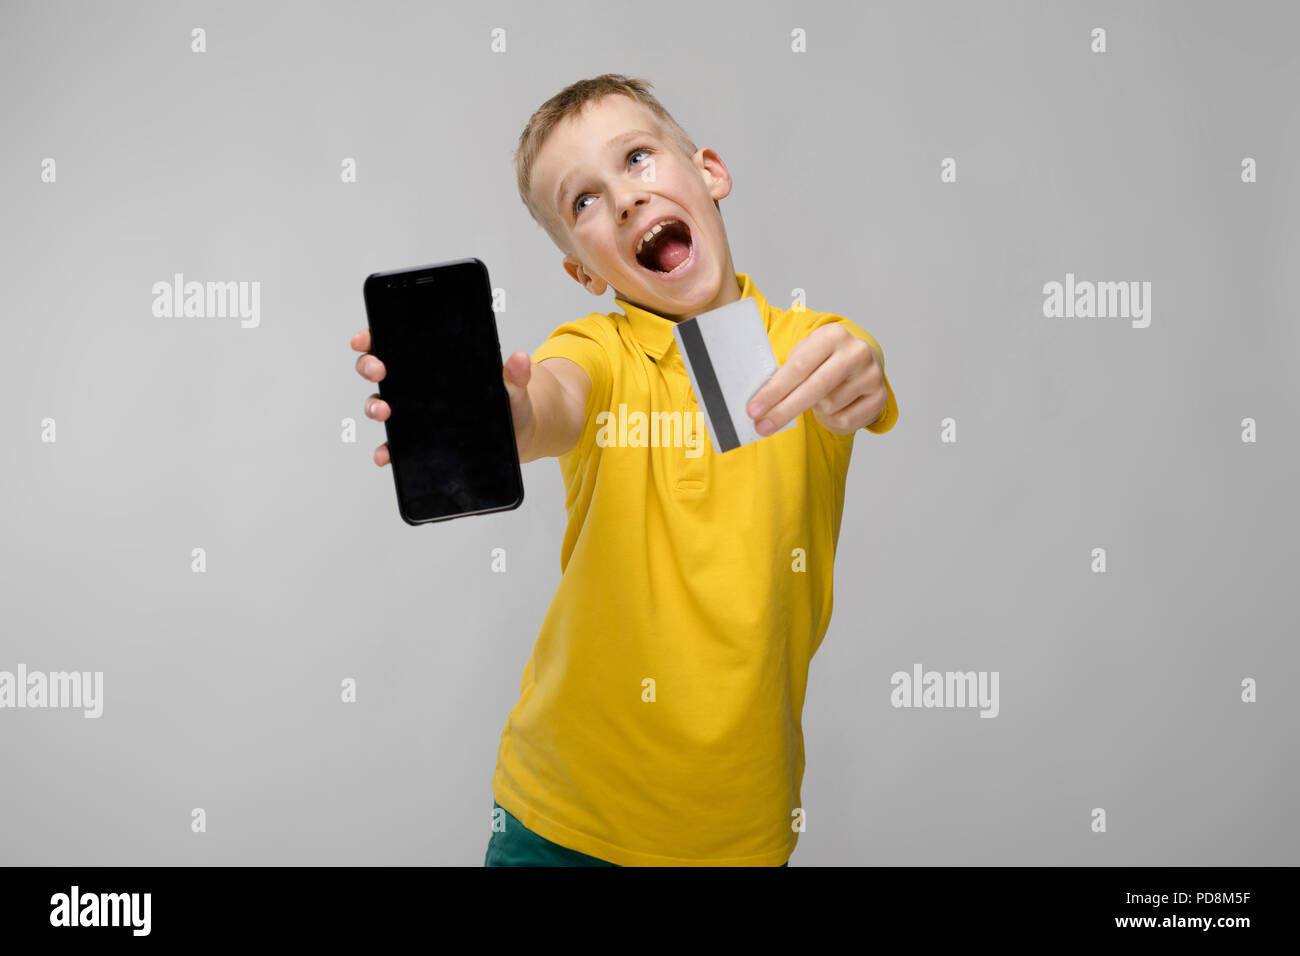 Cute boy with telephone - Stock Image